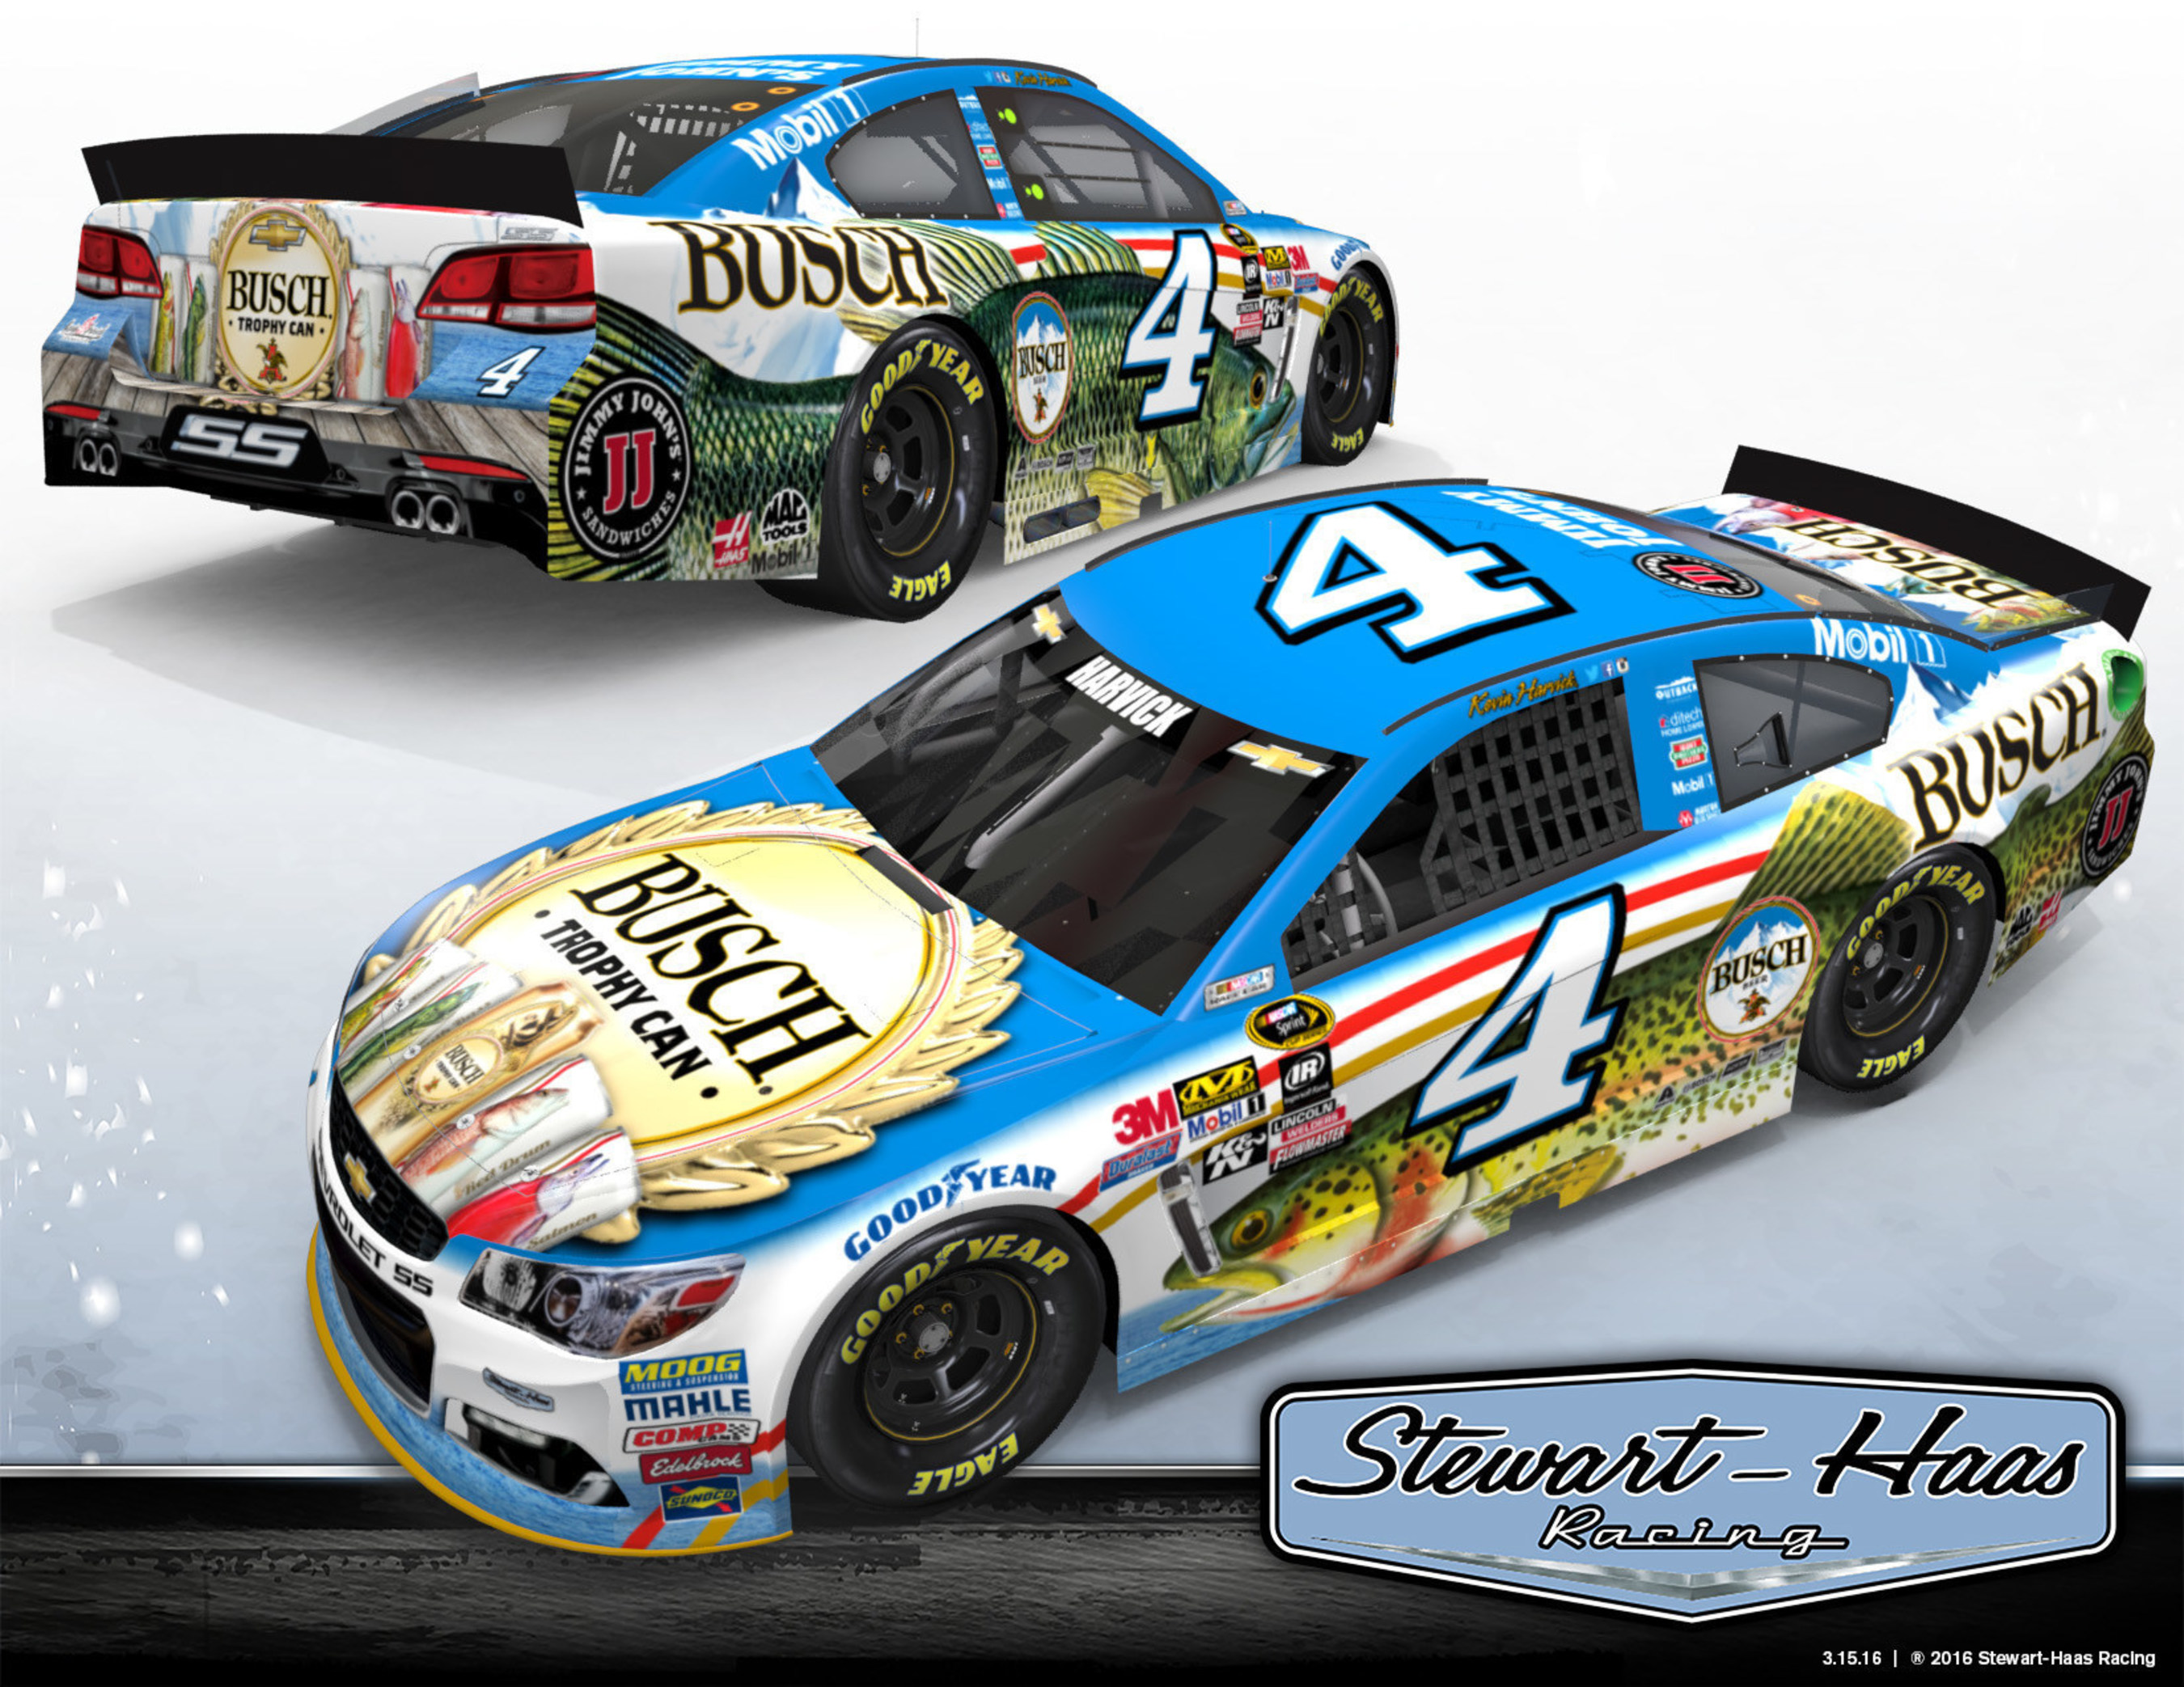 Busch beer's popular fishing promotion is back with a new twist, giving consumers the chance to win the ultimate fishing getaway with pro fisherman and seven time Angler of the Year, Kevin VanDam. The brand's 2016 campaign kicks off on May 1 when NASCAR driver Kevin Harvick's No. 4 Chevrolet SS for Stewart-Haas Racing (SHR) sports a special-edition Busch fishing paint scheme during the GEICO 500 Sprint Cup Series race at Talladega (Alabama) Superspeedway.